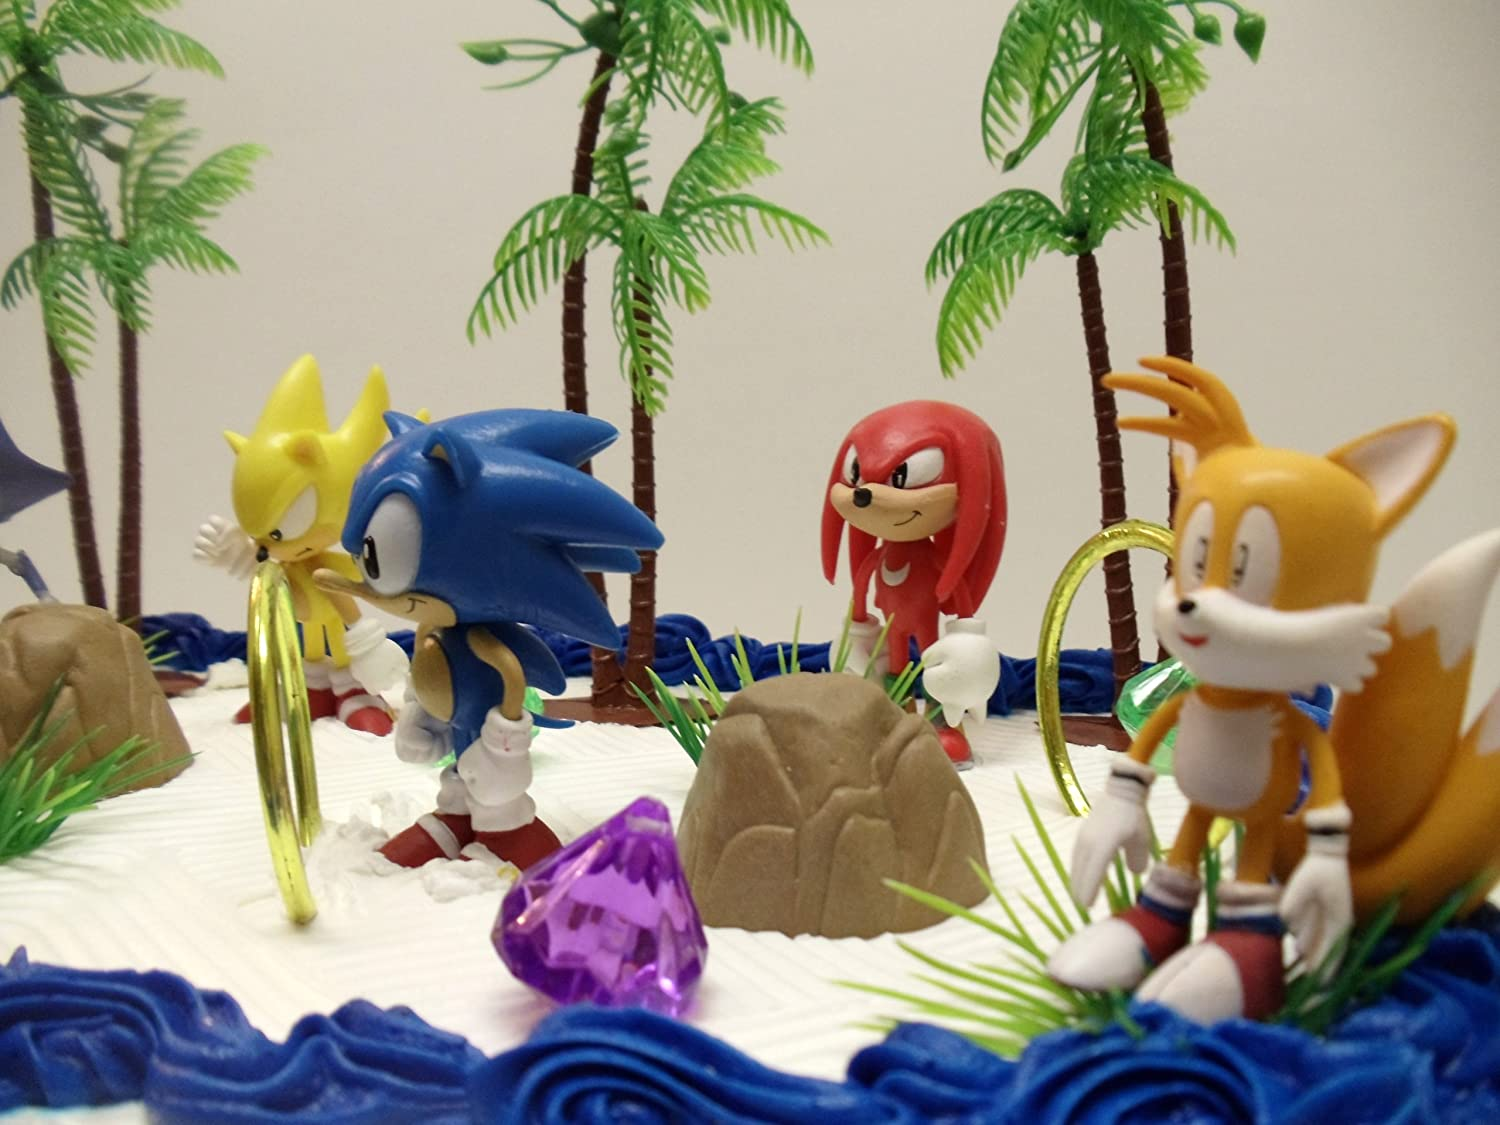 12 classic sonic the hedgehog cake topper set featuring 4